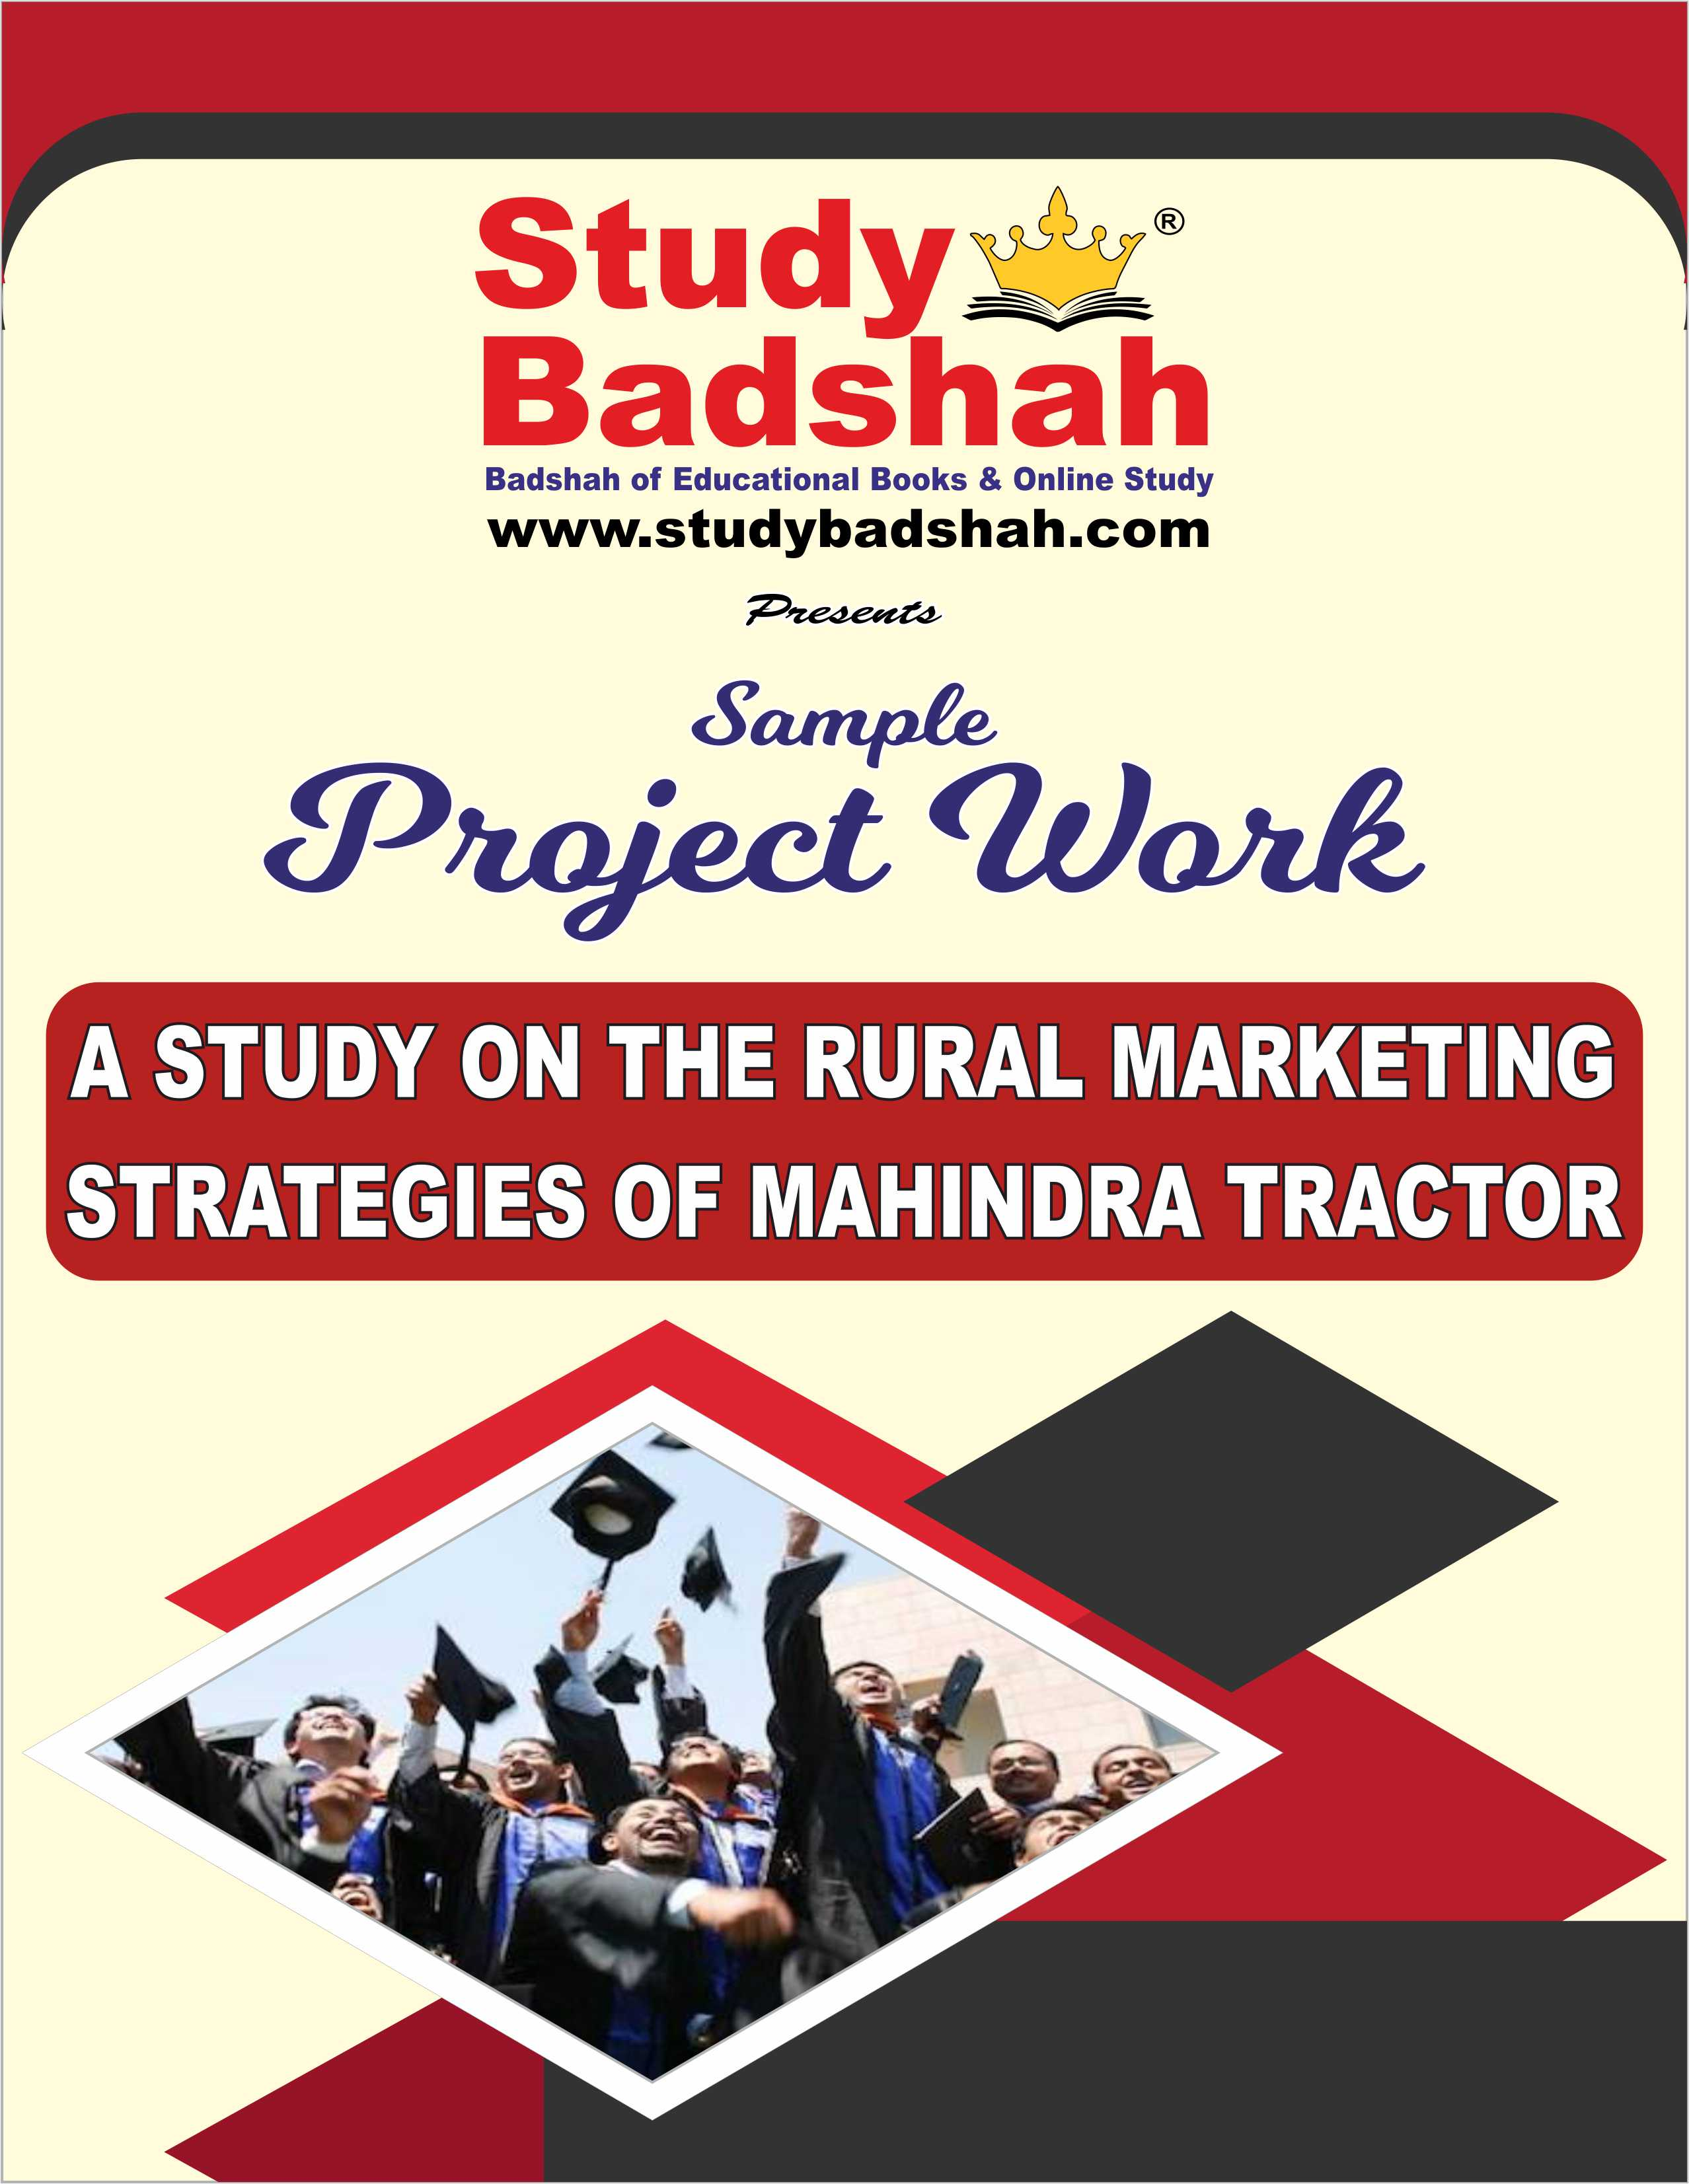 A STUDY ON THE RURAL MARKETING MAHINDRA TRACTOR